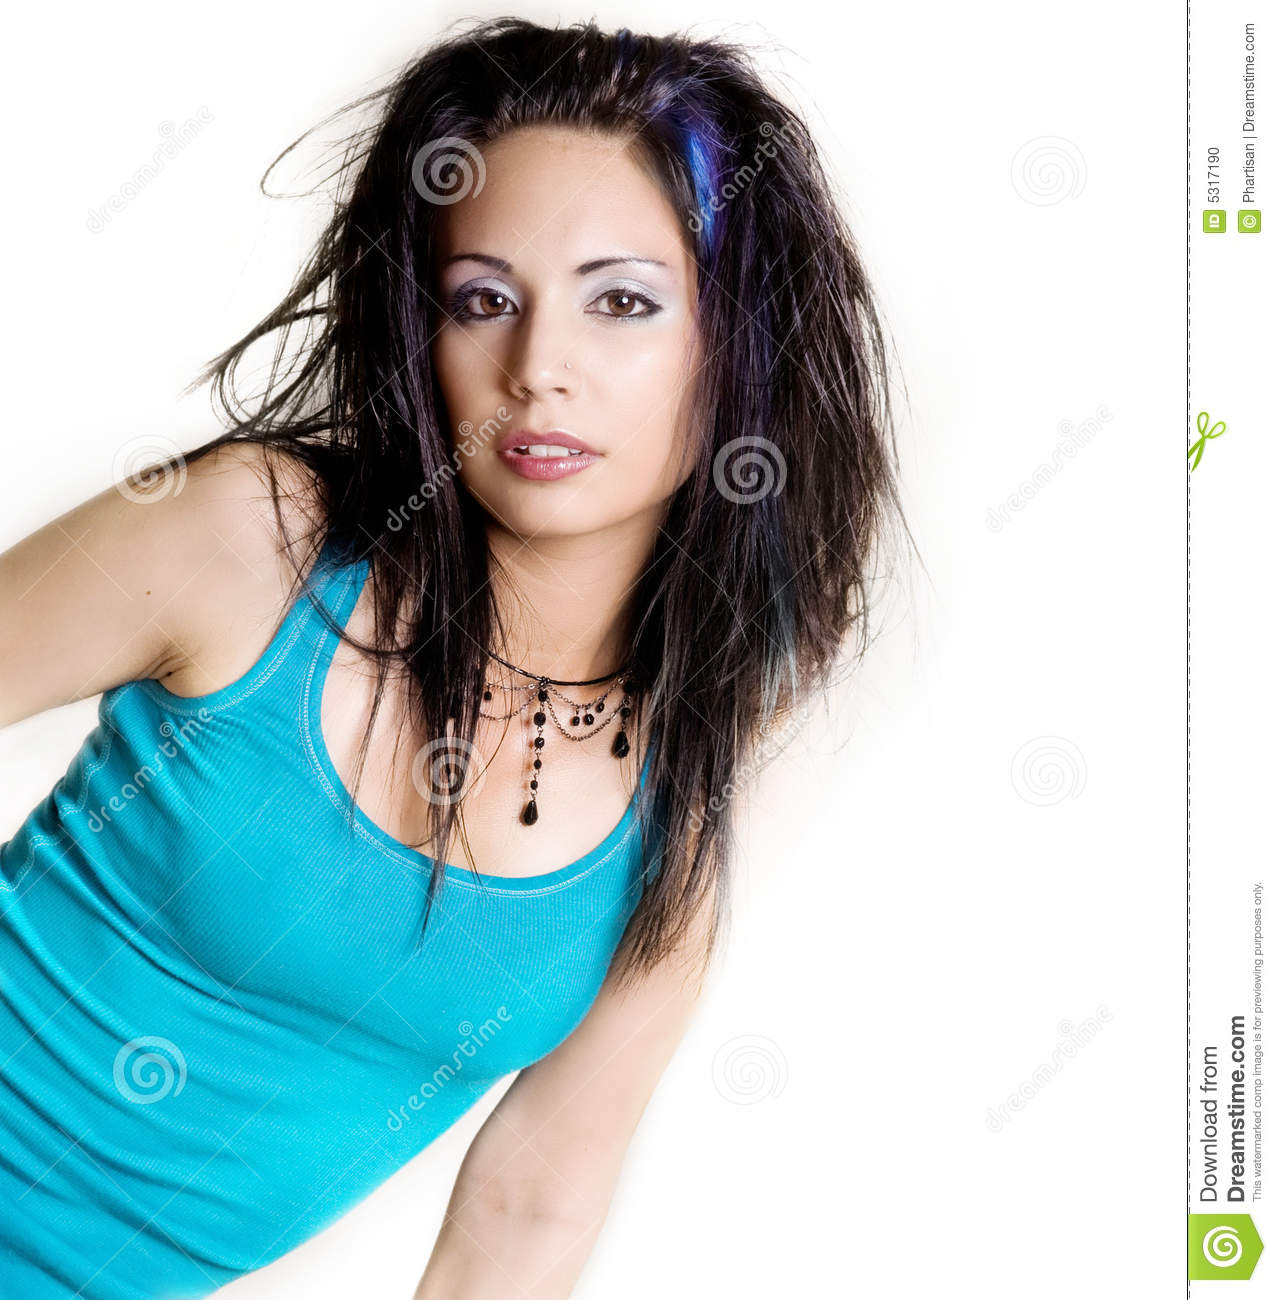 Download Bella Donna Fresca Intelligente Fotografia Stock - Immagine di flirting, femmina: 5317190